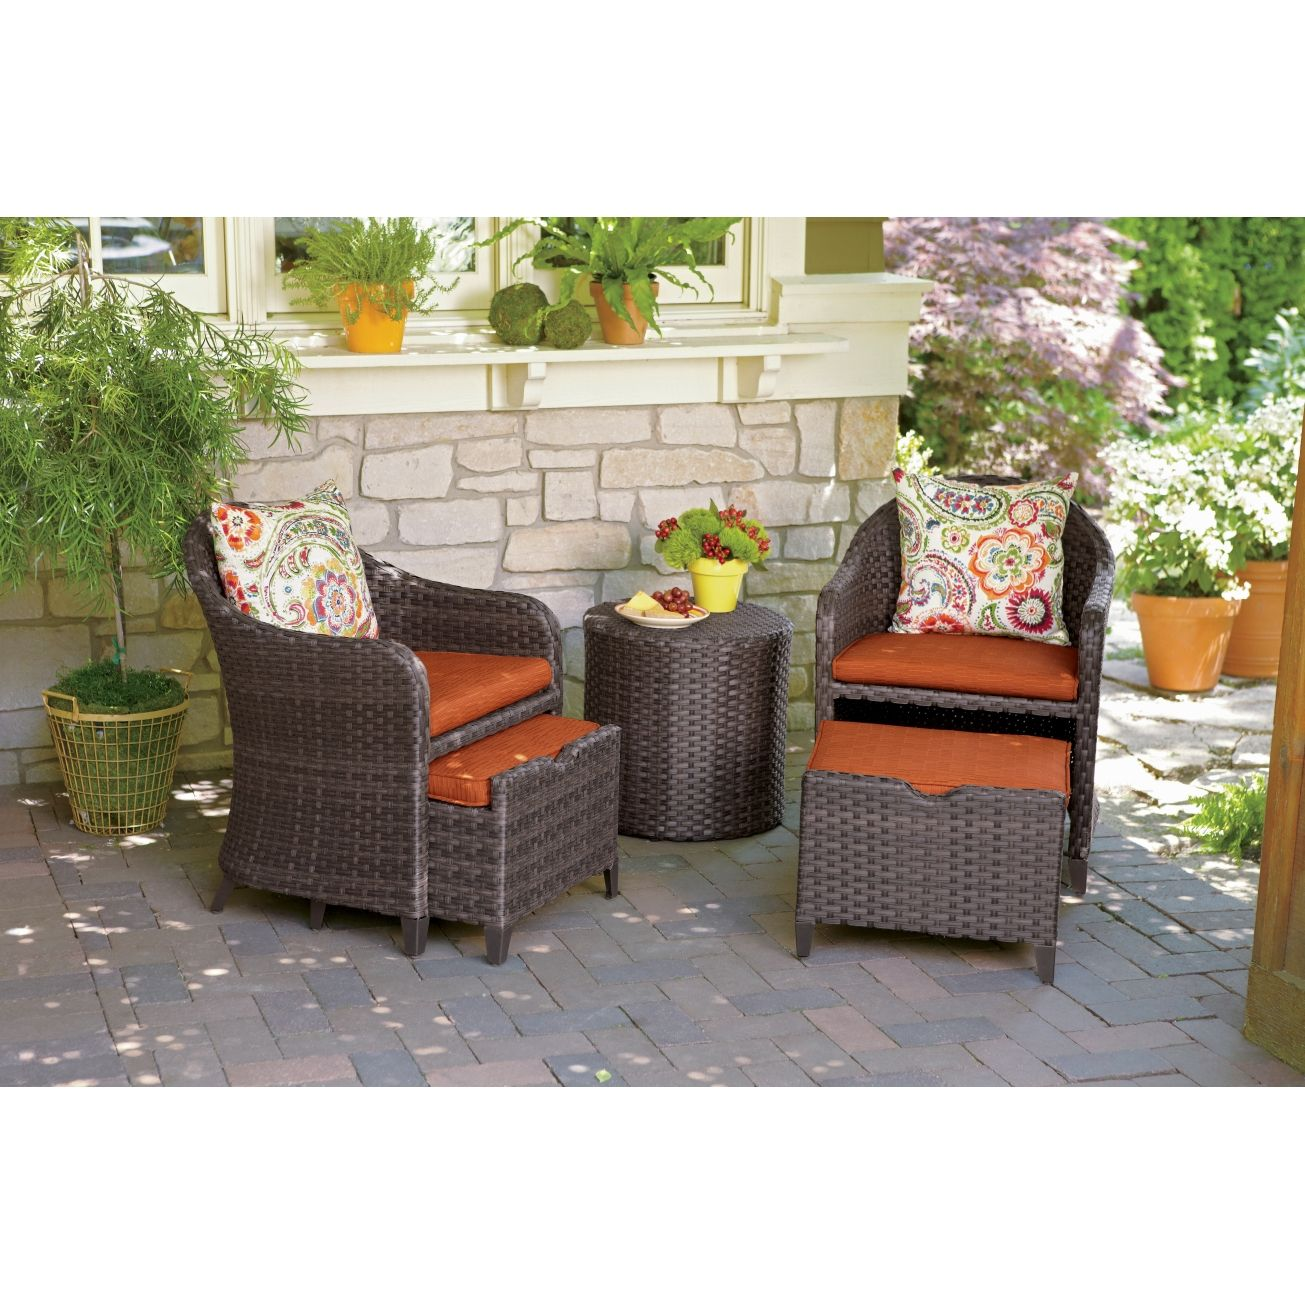 Seabrook  Pc Wicker Chat Set WPullOut Ottomans All Patio - Ace hardware outdoor furniture